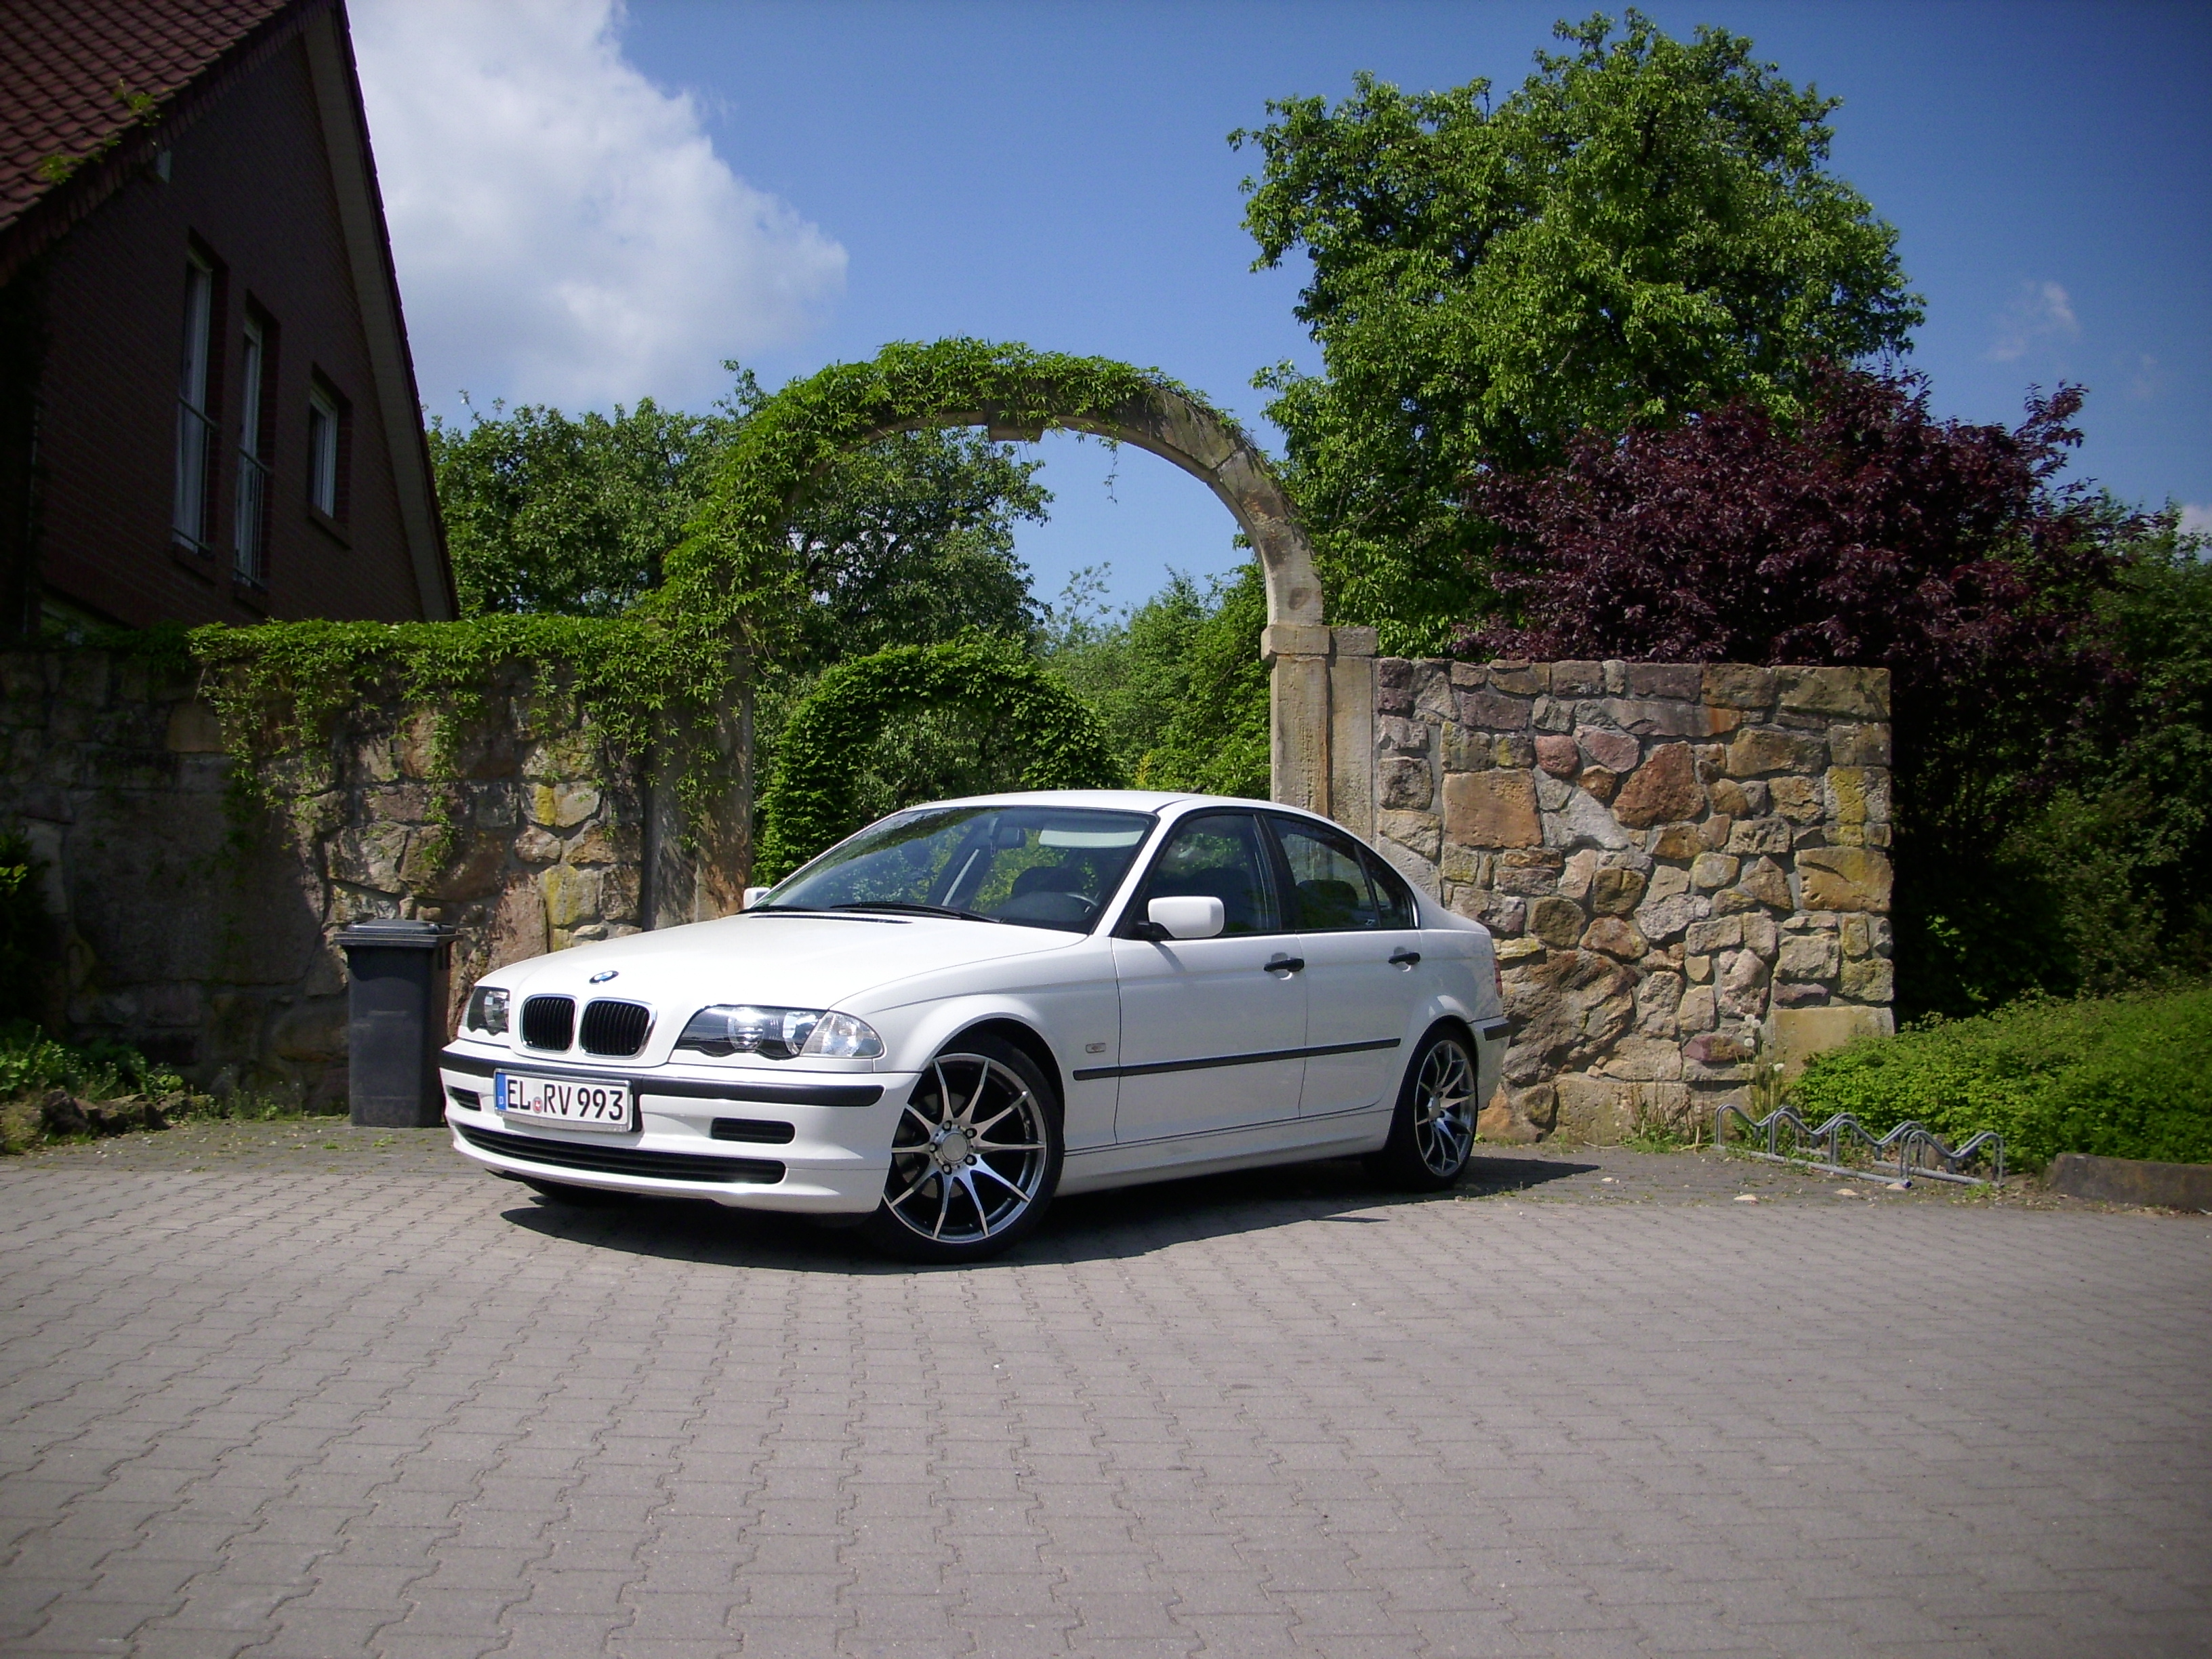 bmw e46 alpinweiss iii 3er bmw e46 limousine. Black Bedroom Furniture Sets. Home Design Ideas